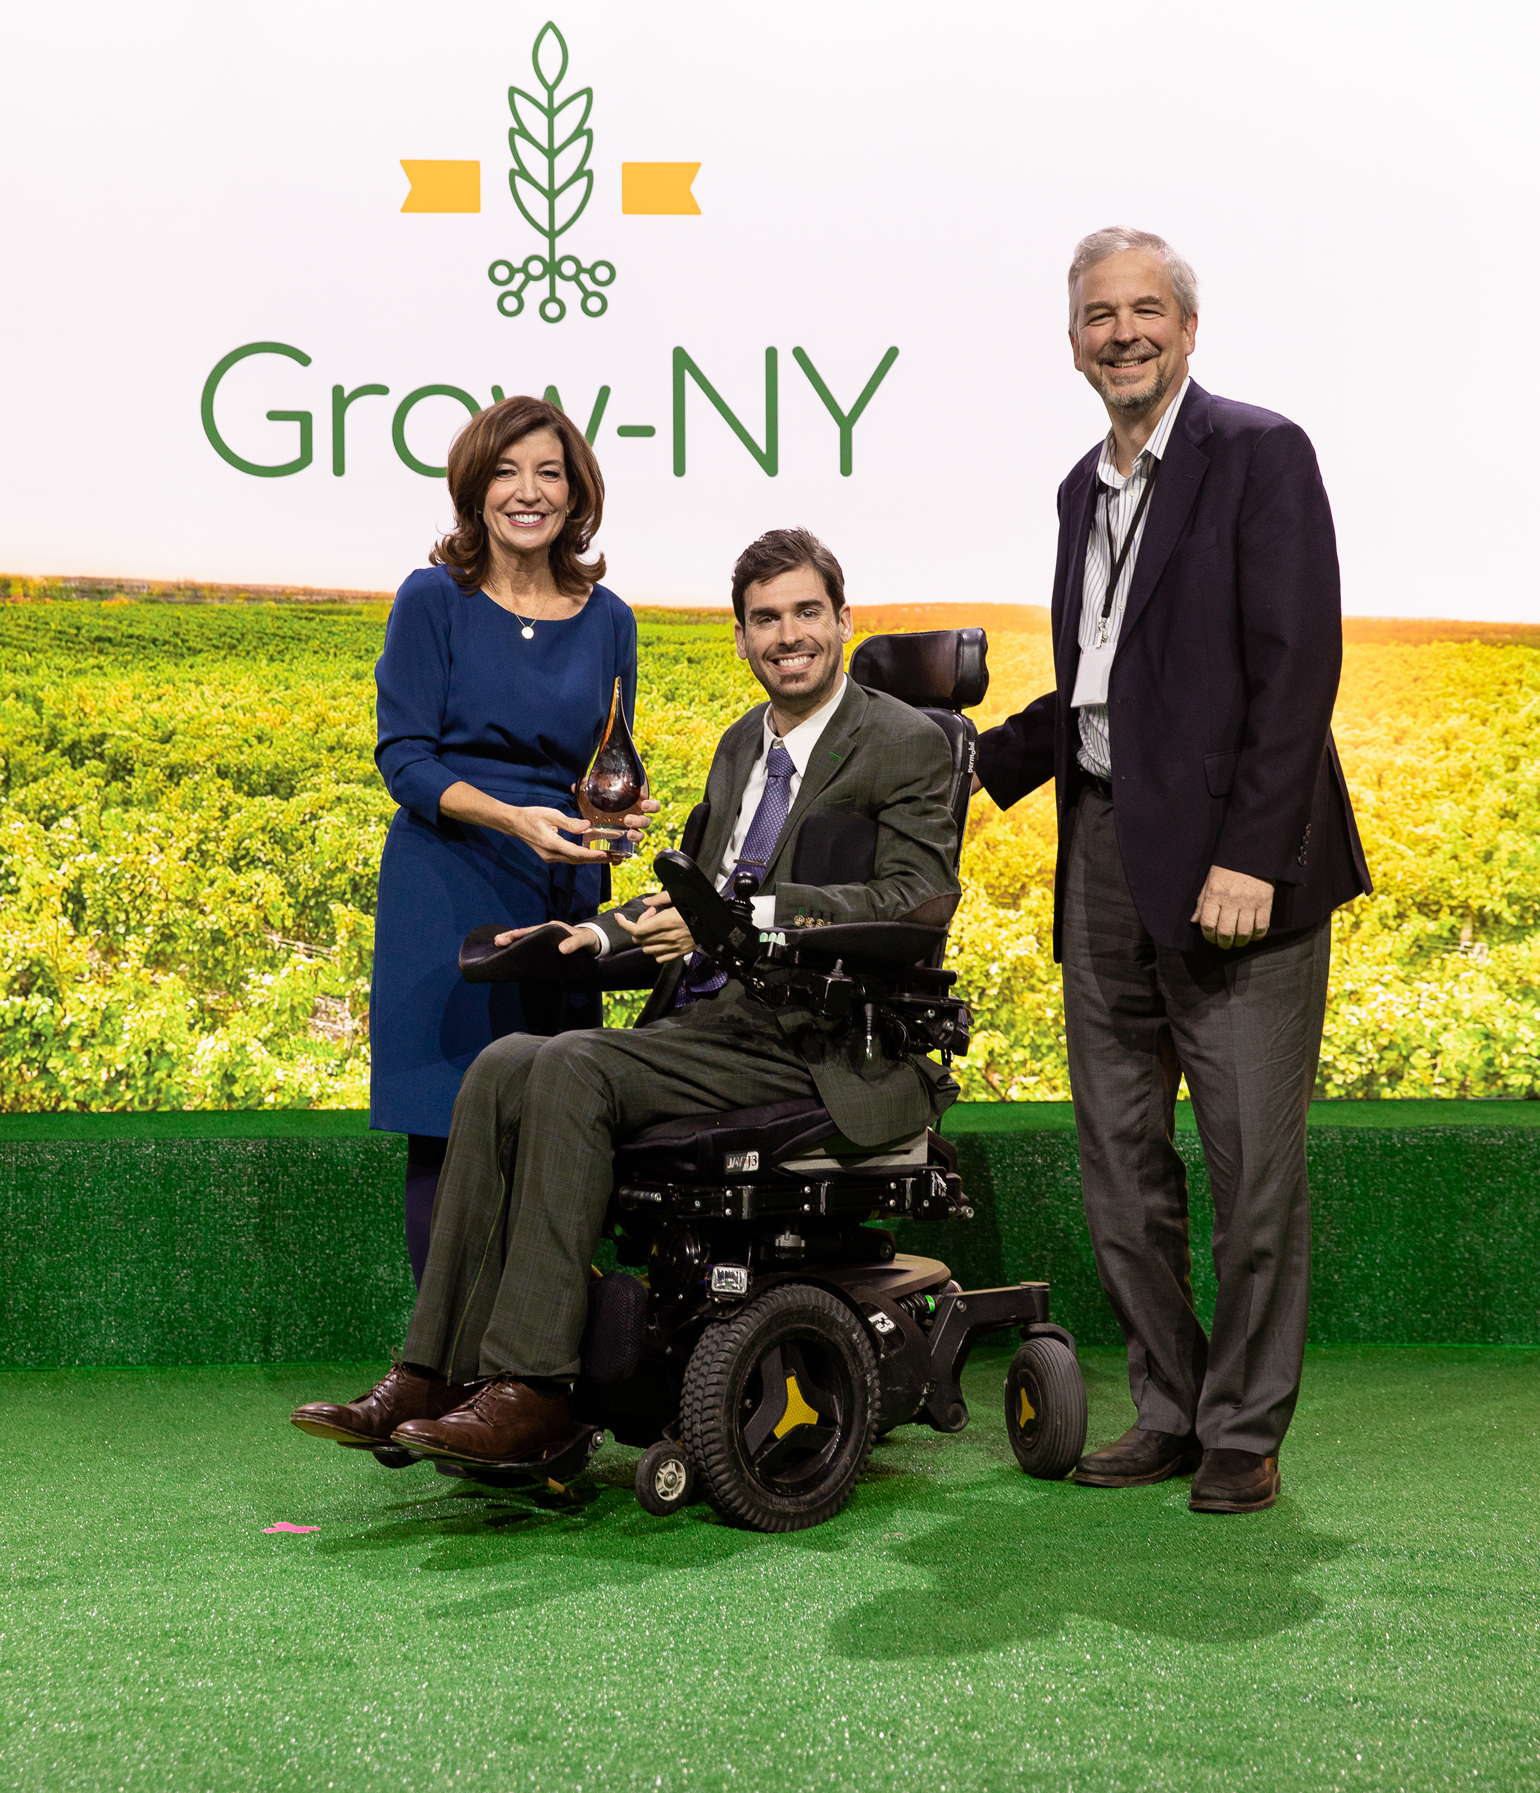 Adam Fine and Mike Winch of Dropcopter receive a Grow-NY award from Kathy Hochul, lieutenant governor of New York